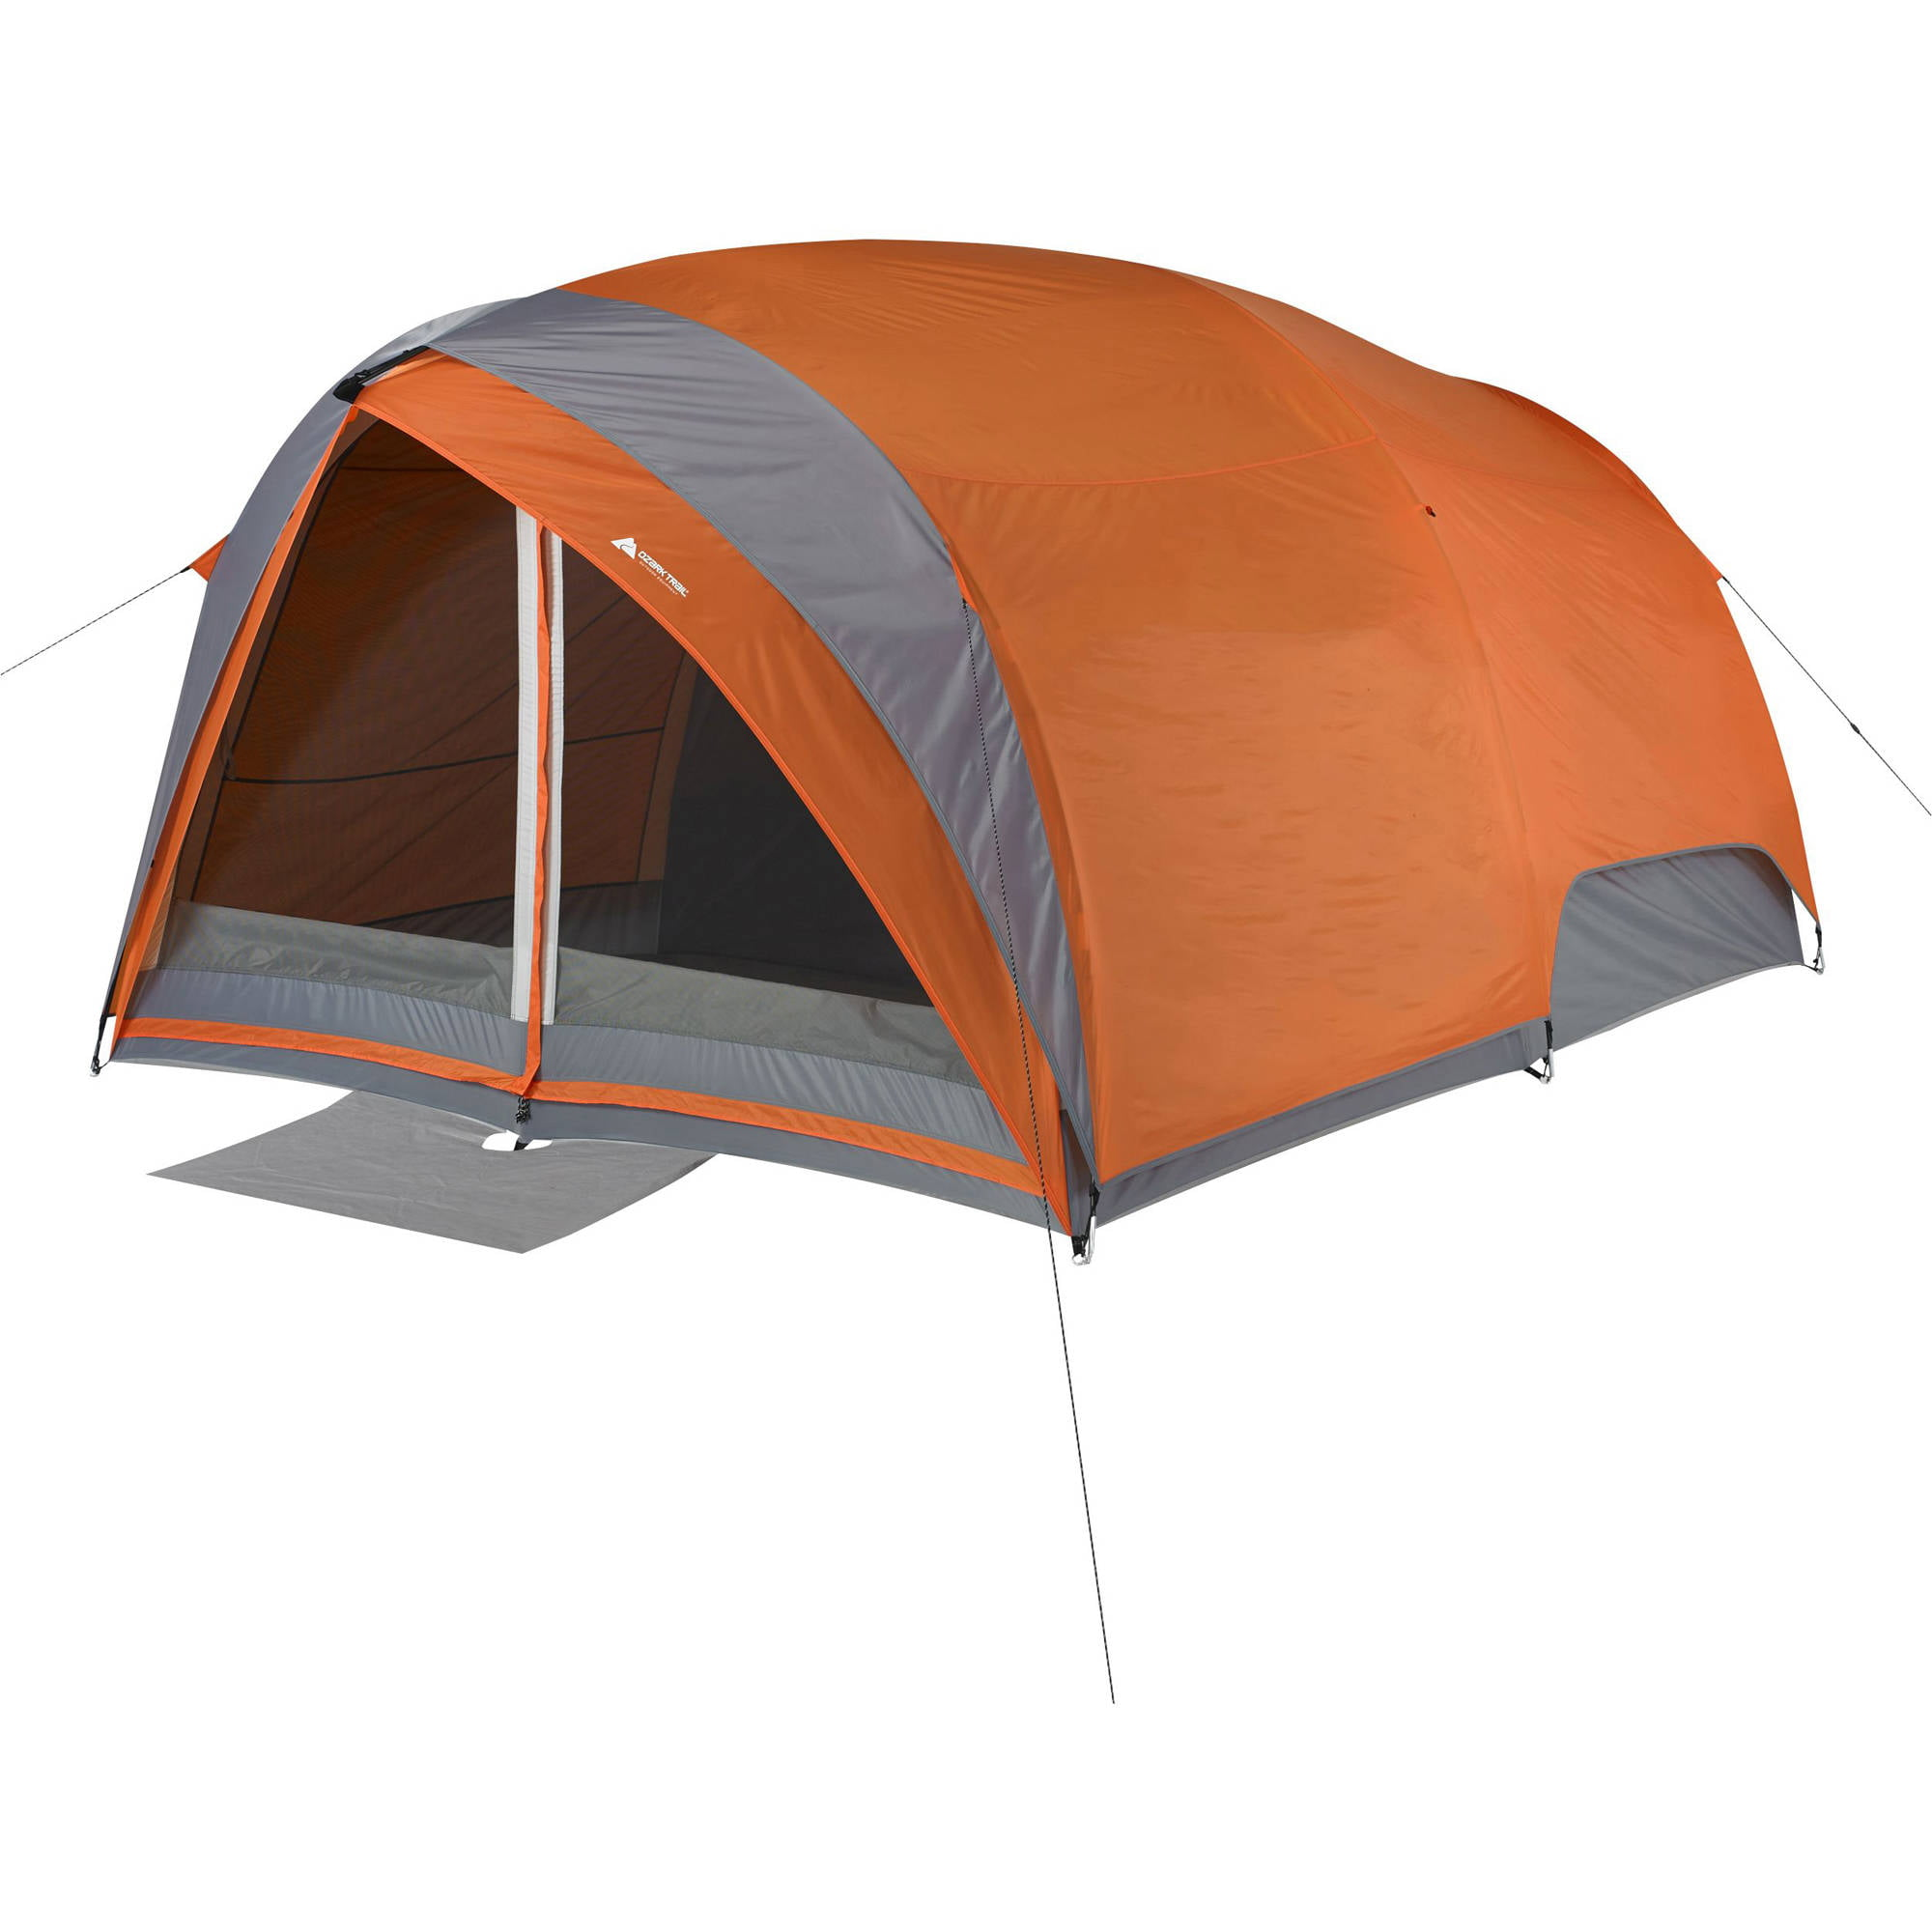 Ozark Trail 8-Person Dome Tunnel Tent with Maximum Weather Protection - Walmart.com  sc 1 st  Walmart.com & Ozark Trail 8-Person Dome Tunnel Tent with Maximum Weather ...